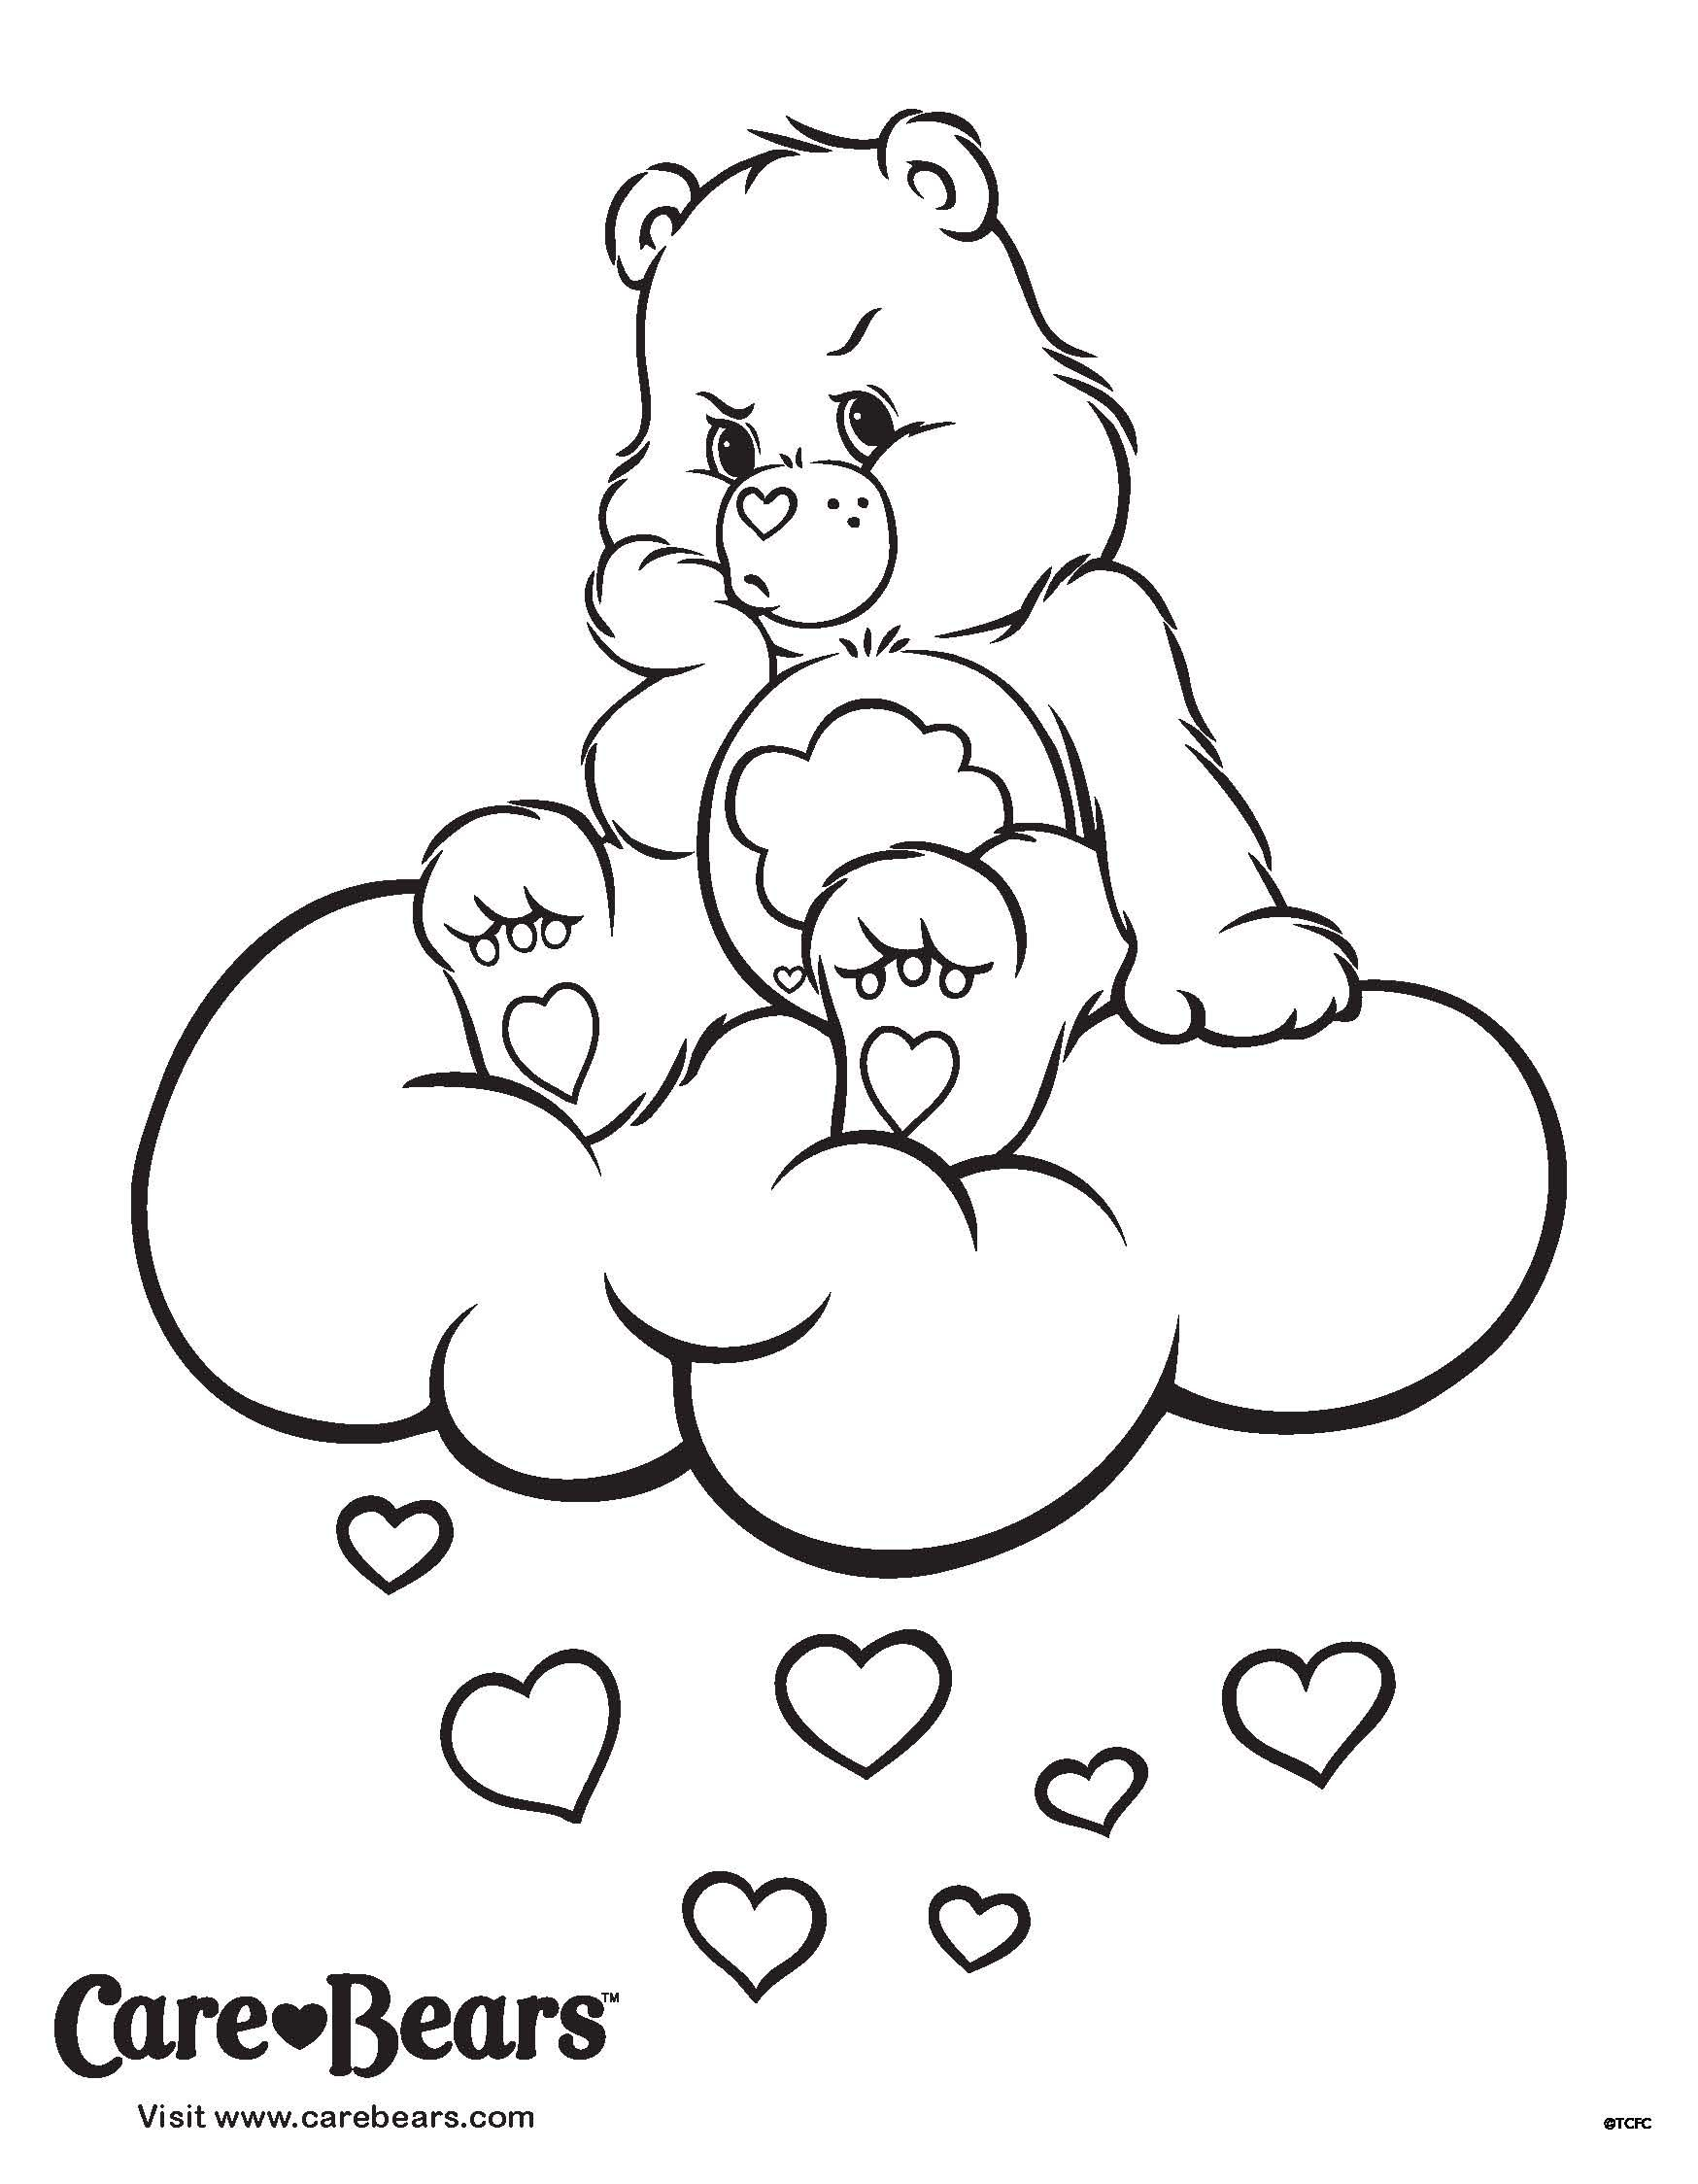 Pin By Care Bears On Meet The Care Bears Bear Coloring Pages Cute Coloring Pages Coloring Pages